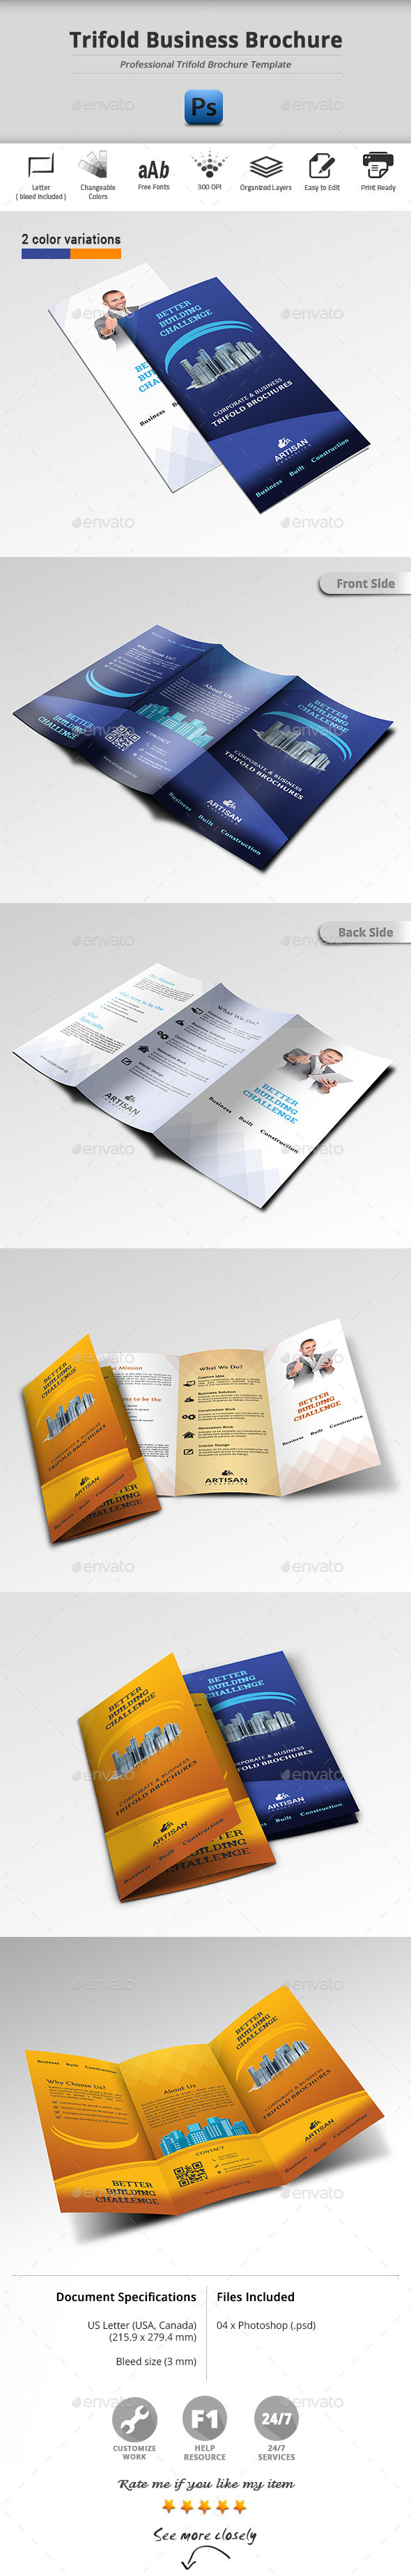 GraphicRiver Trifold Business Brochure 11458928